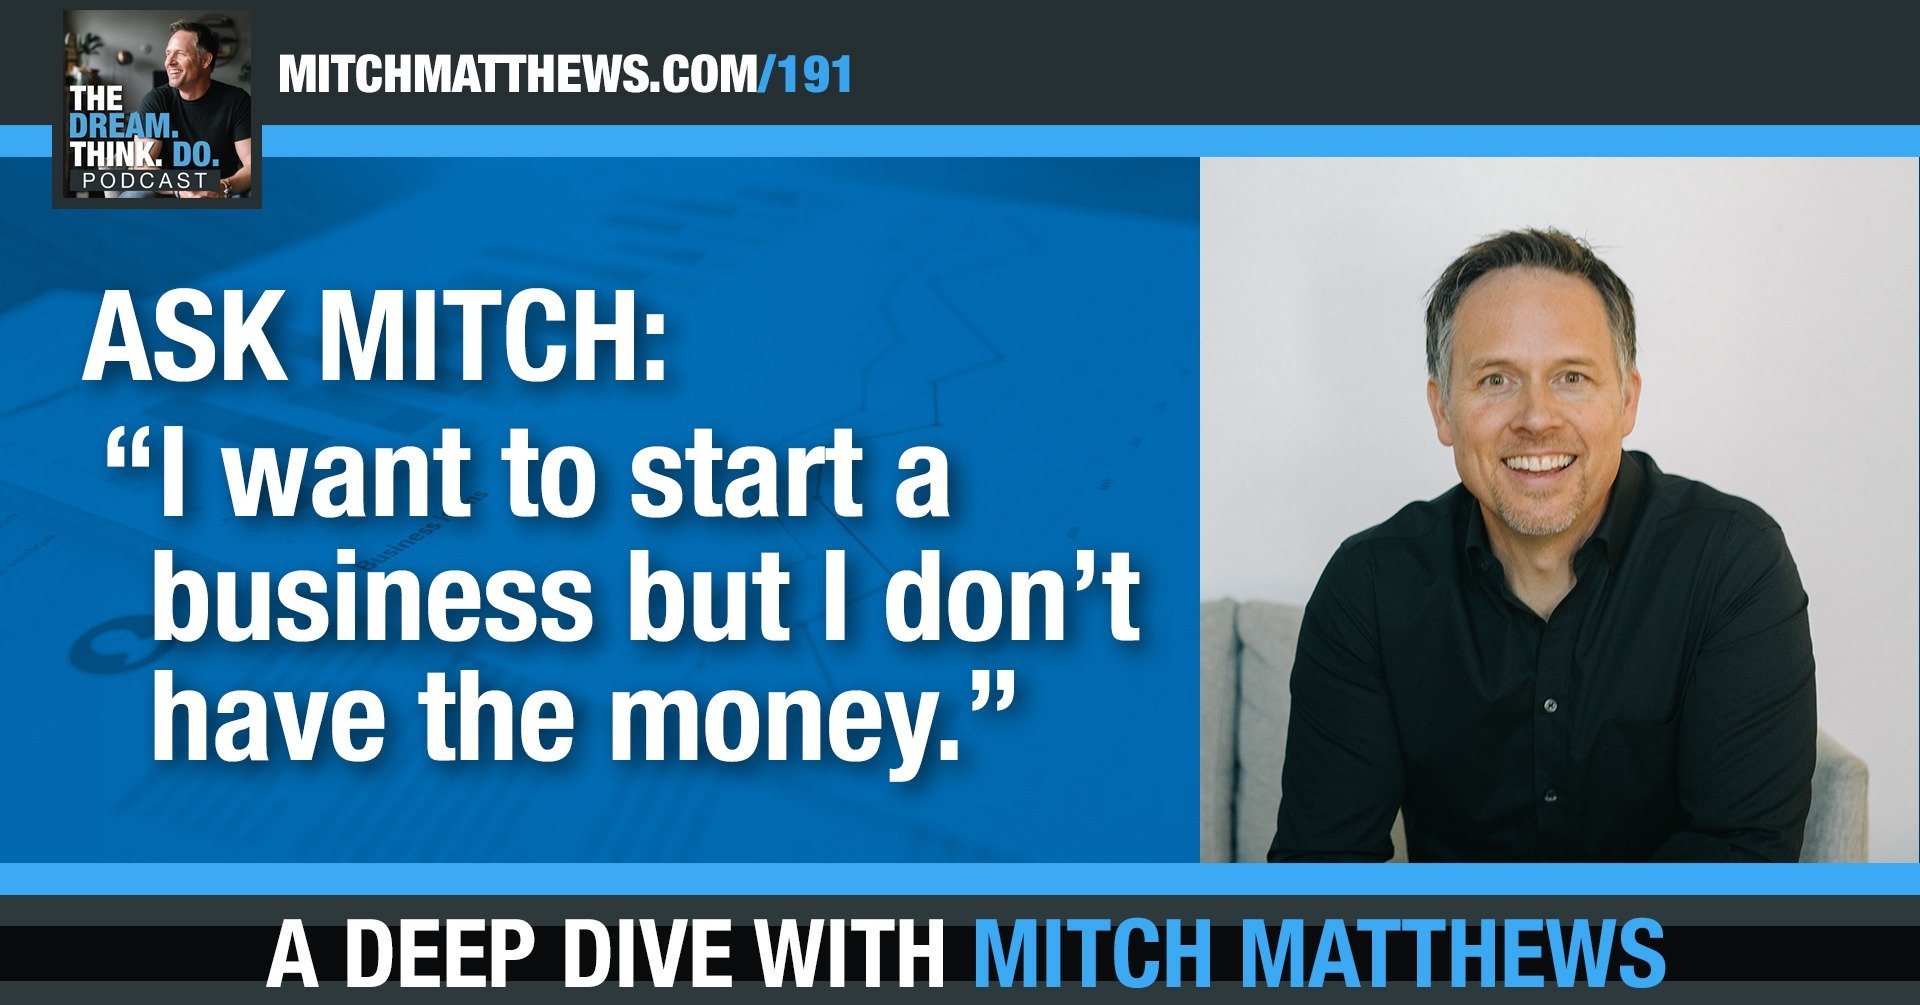 Ask Mitch - I want to start a business but where do I start?